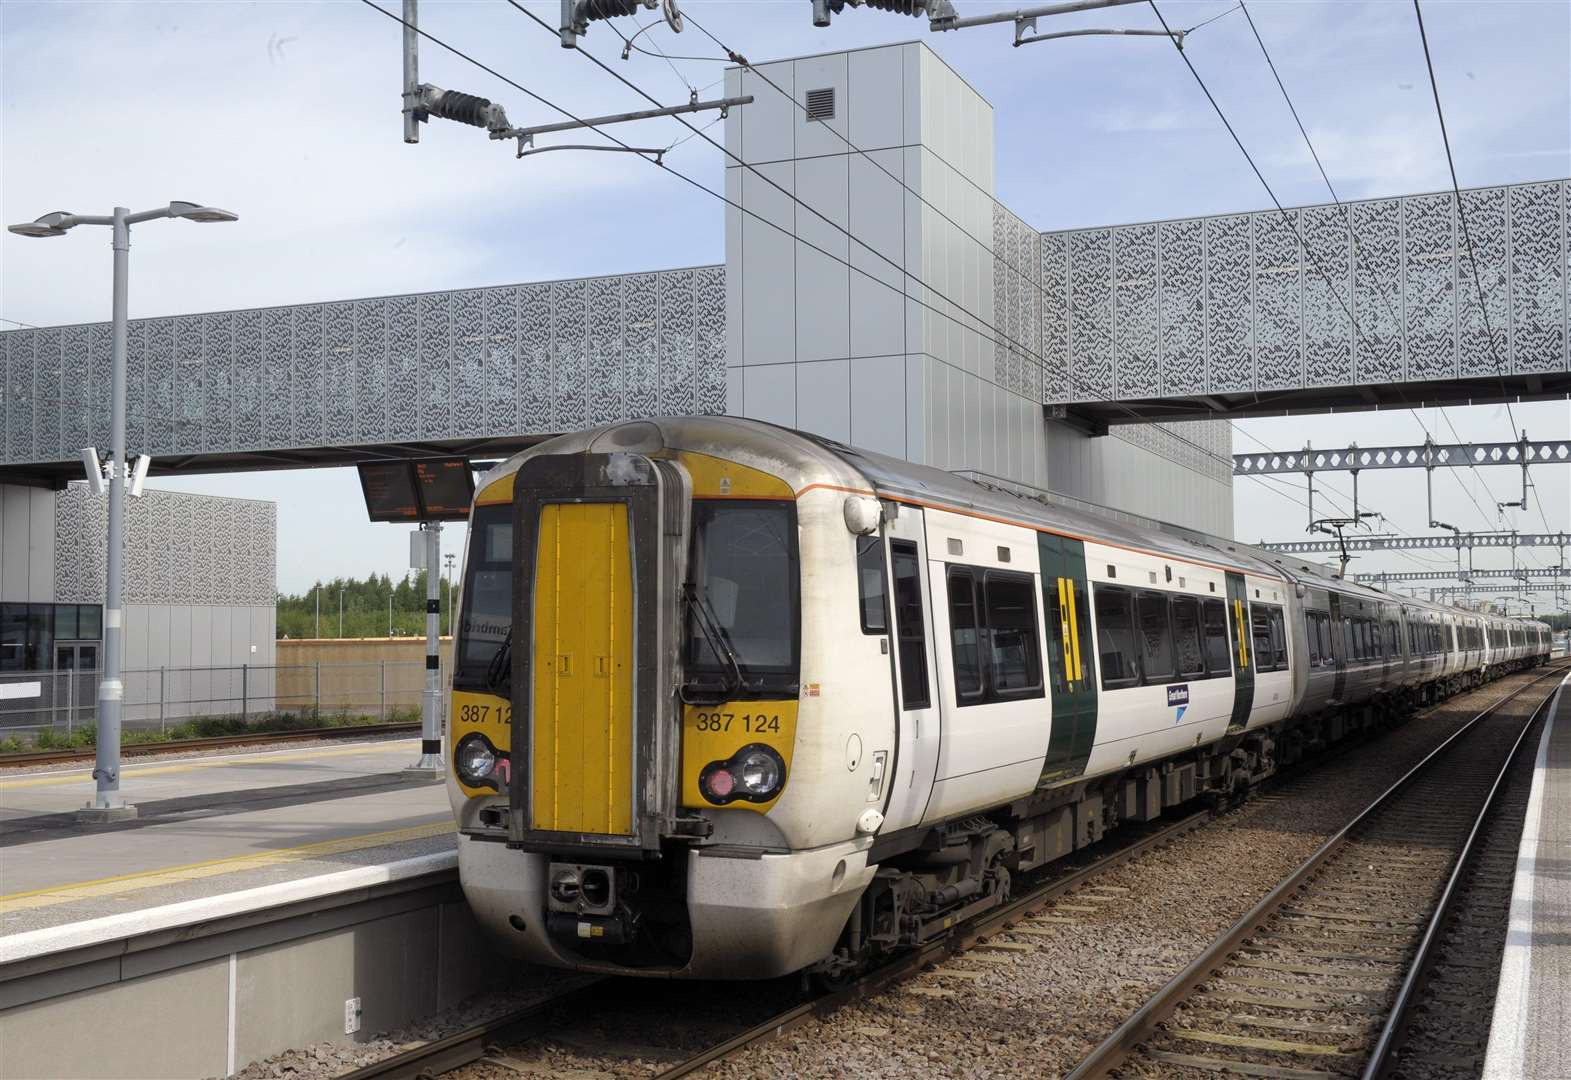 Interim timetable 'working well', says West Norfolk train operator